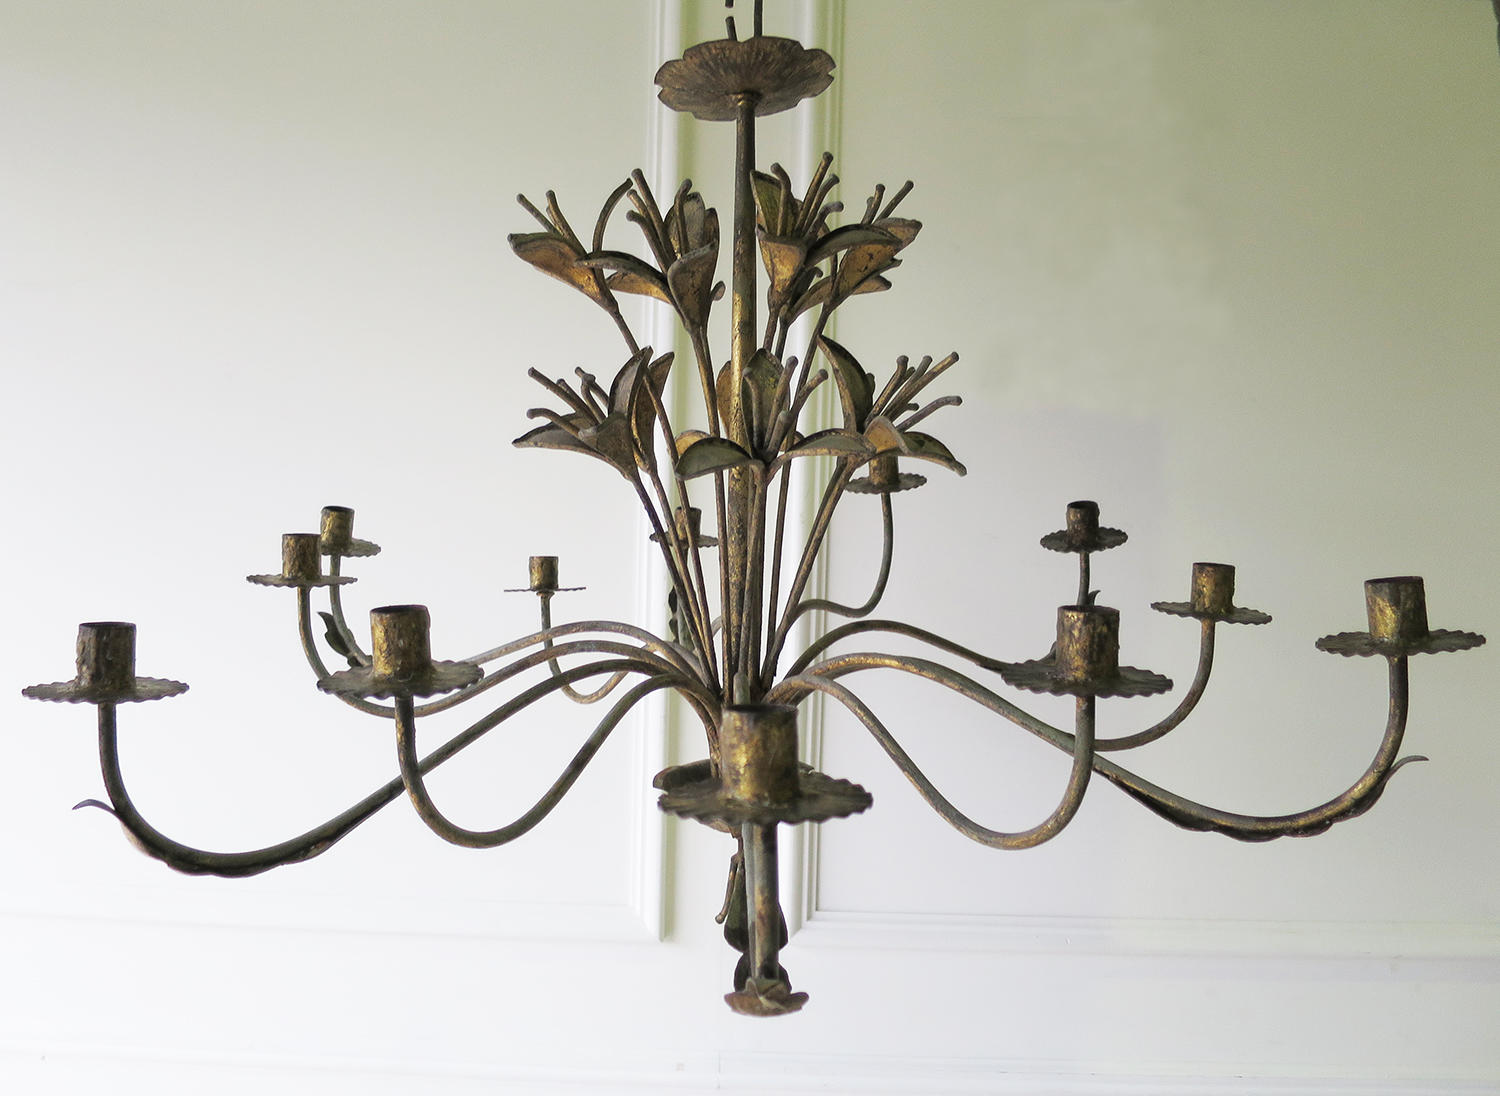 French early 20th c decorative 'Tole' Chandelier circa 1910